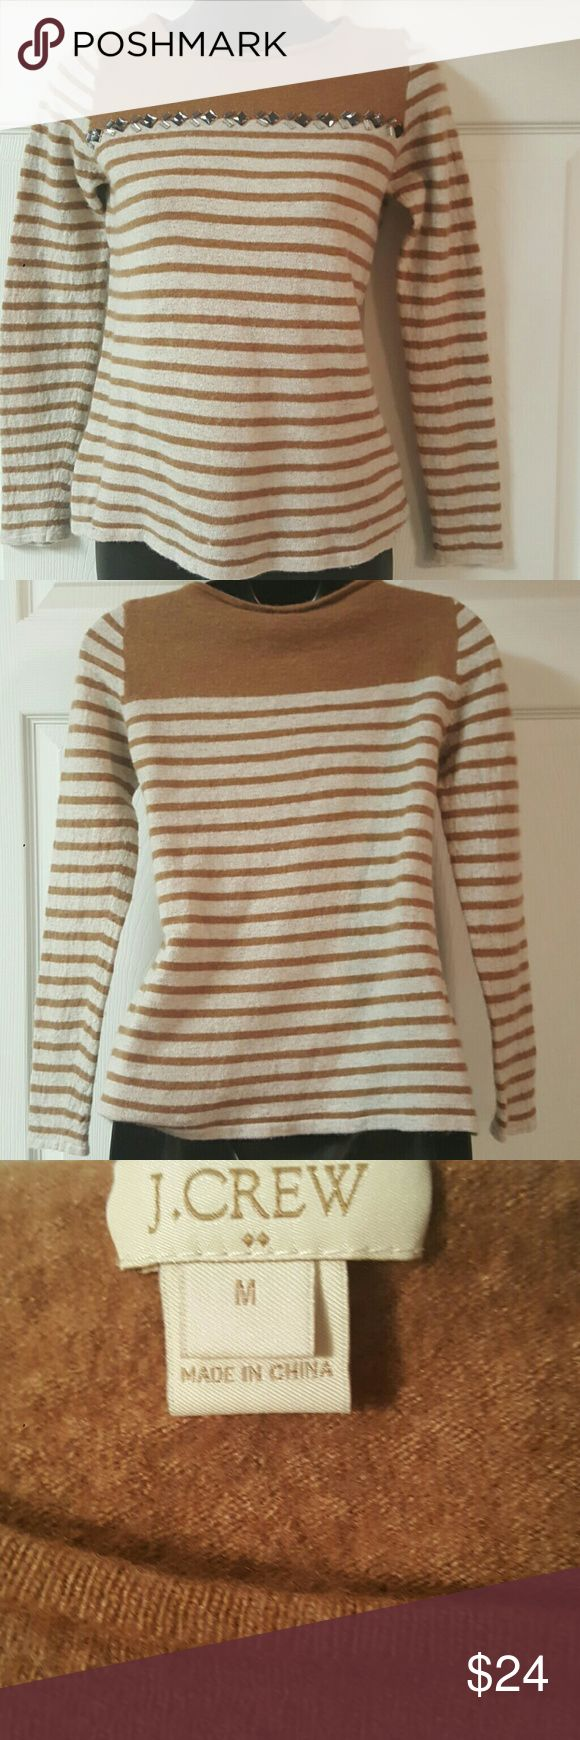 Great condition size Medium J CREW sweater. Great condition J Crew sweater with jewel detailing. 37% Viscose 36l5% Nylon 28%Merino Wool J. Crew Sweaters Crew & Scoop Necks